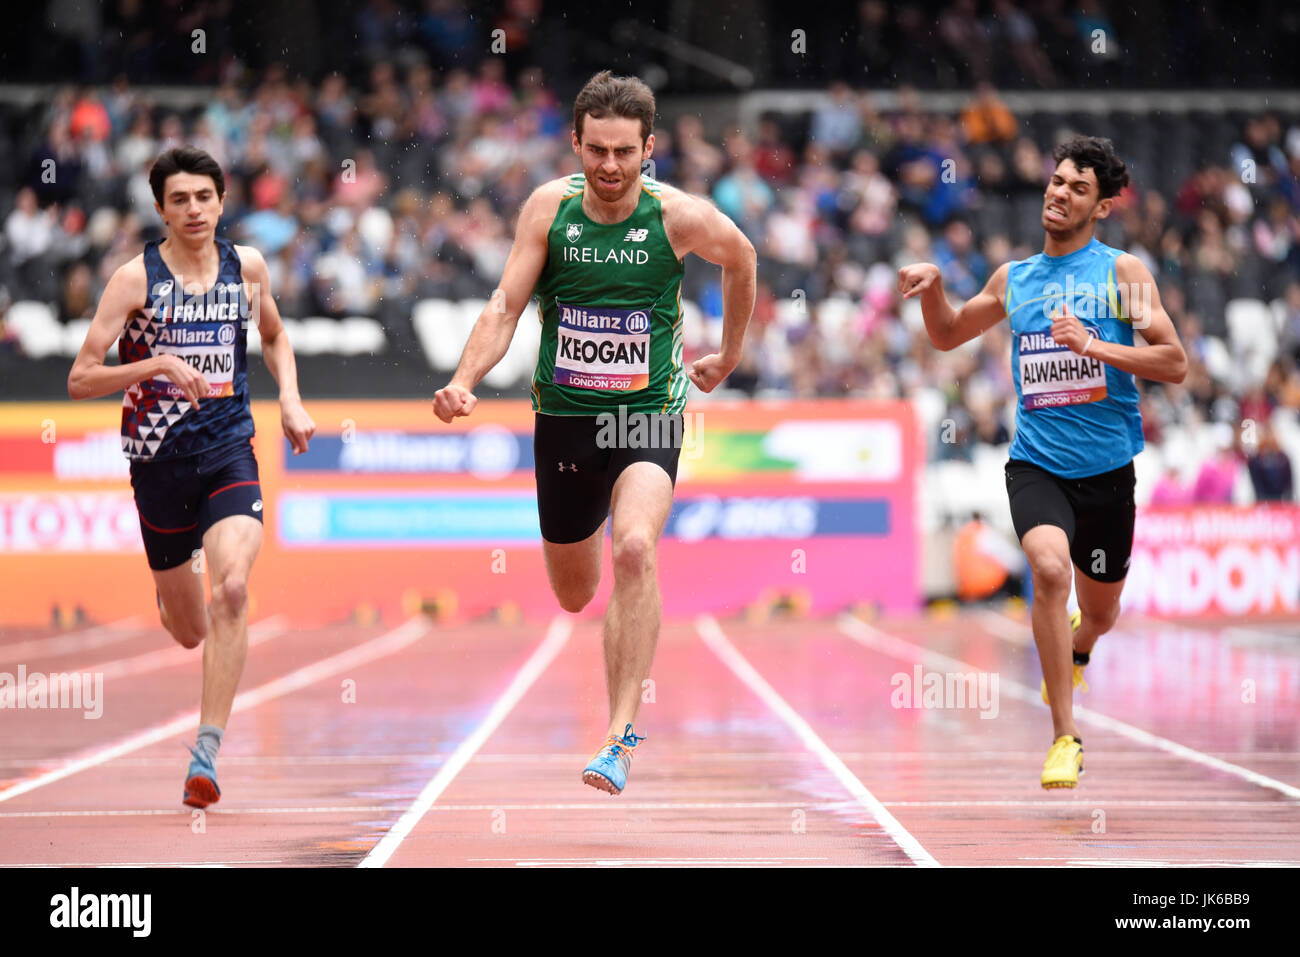 Irish athlete Paul Keogan in 400m T37 heat on a wet track at the World Para Athletics Championships in the London Stock Photo